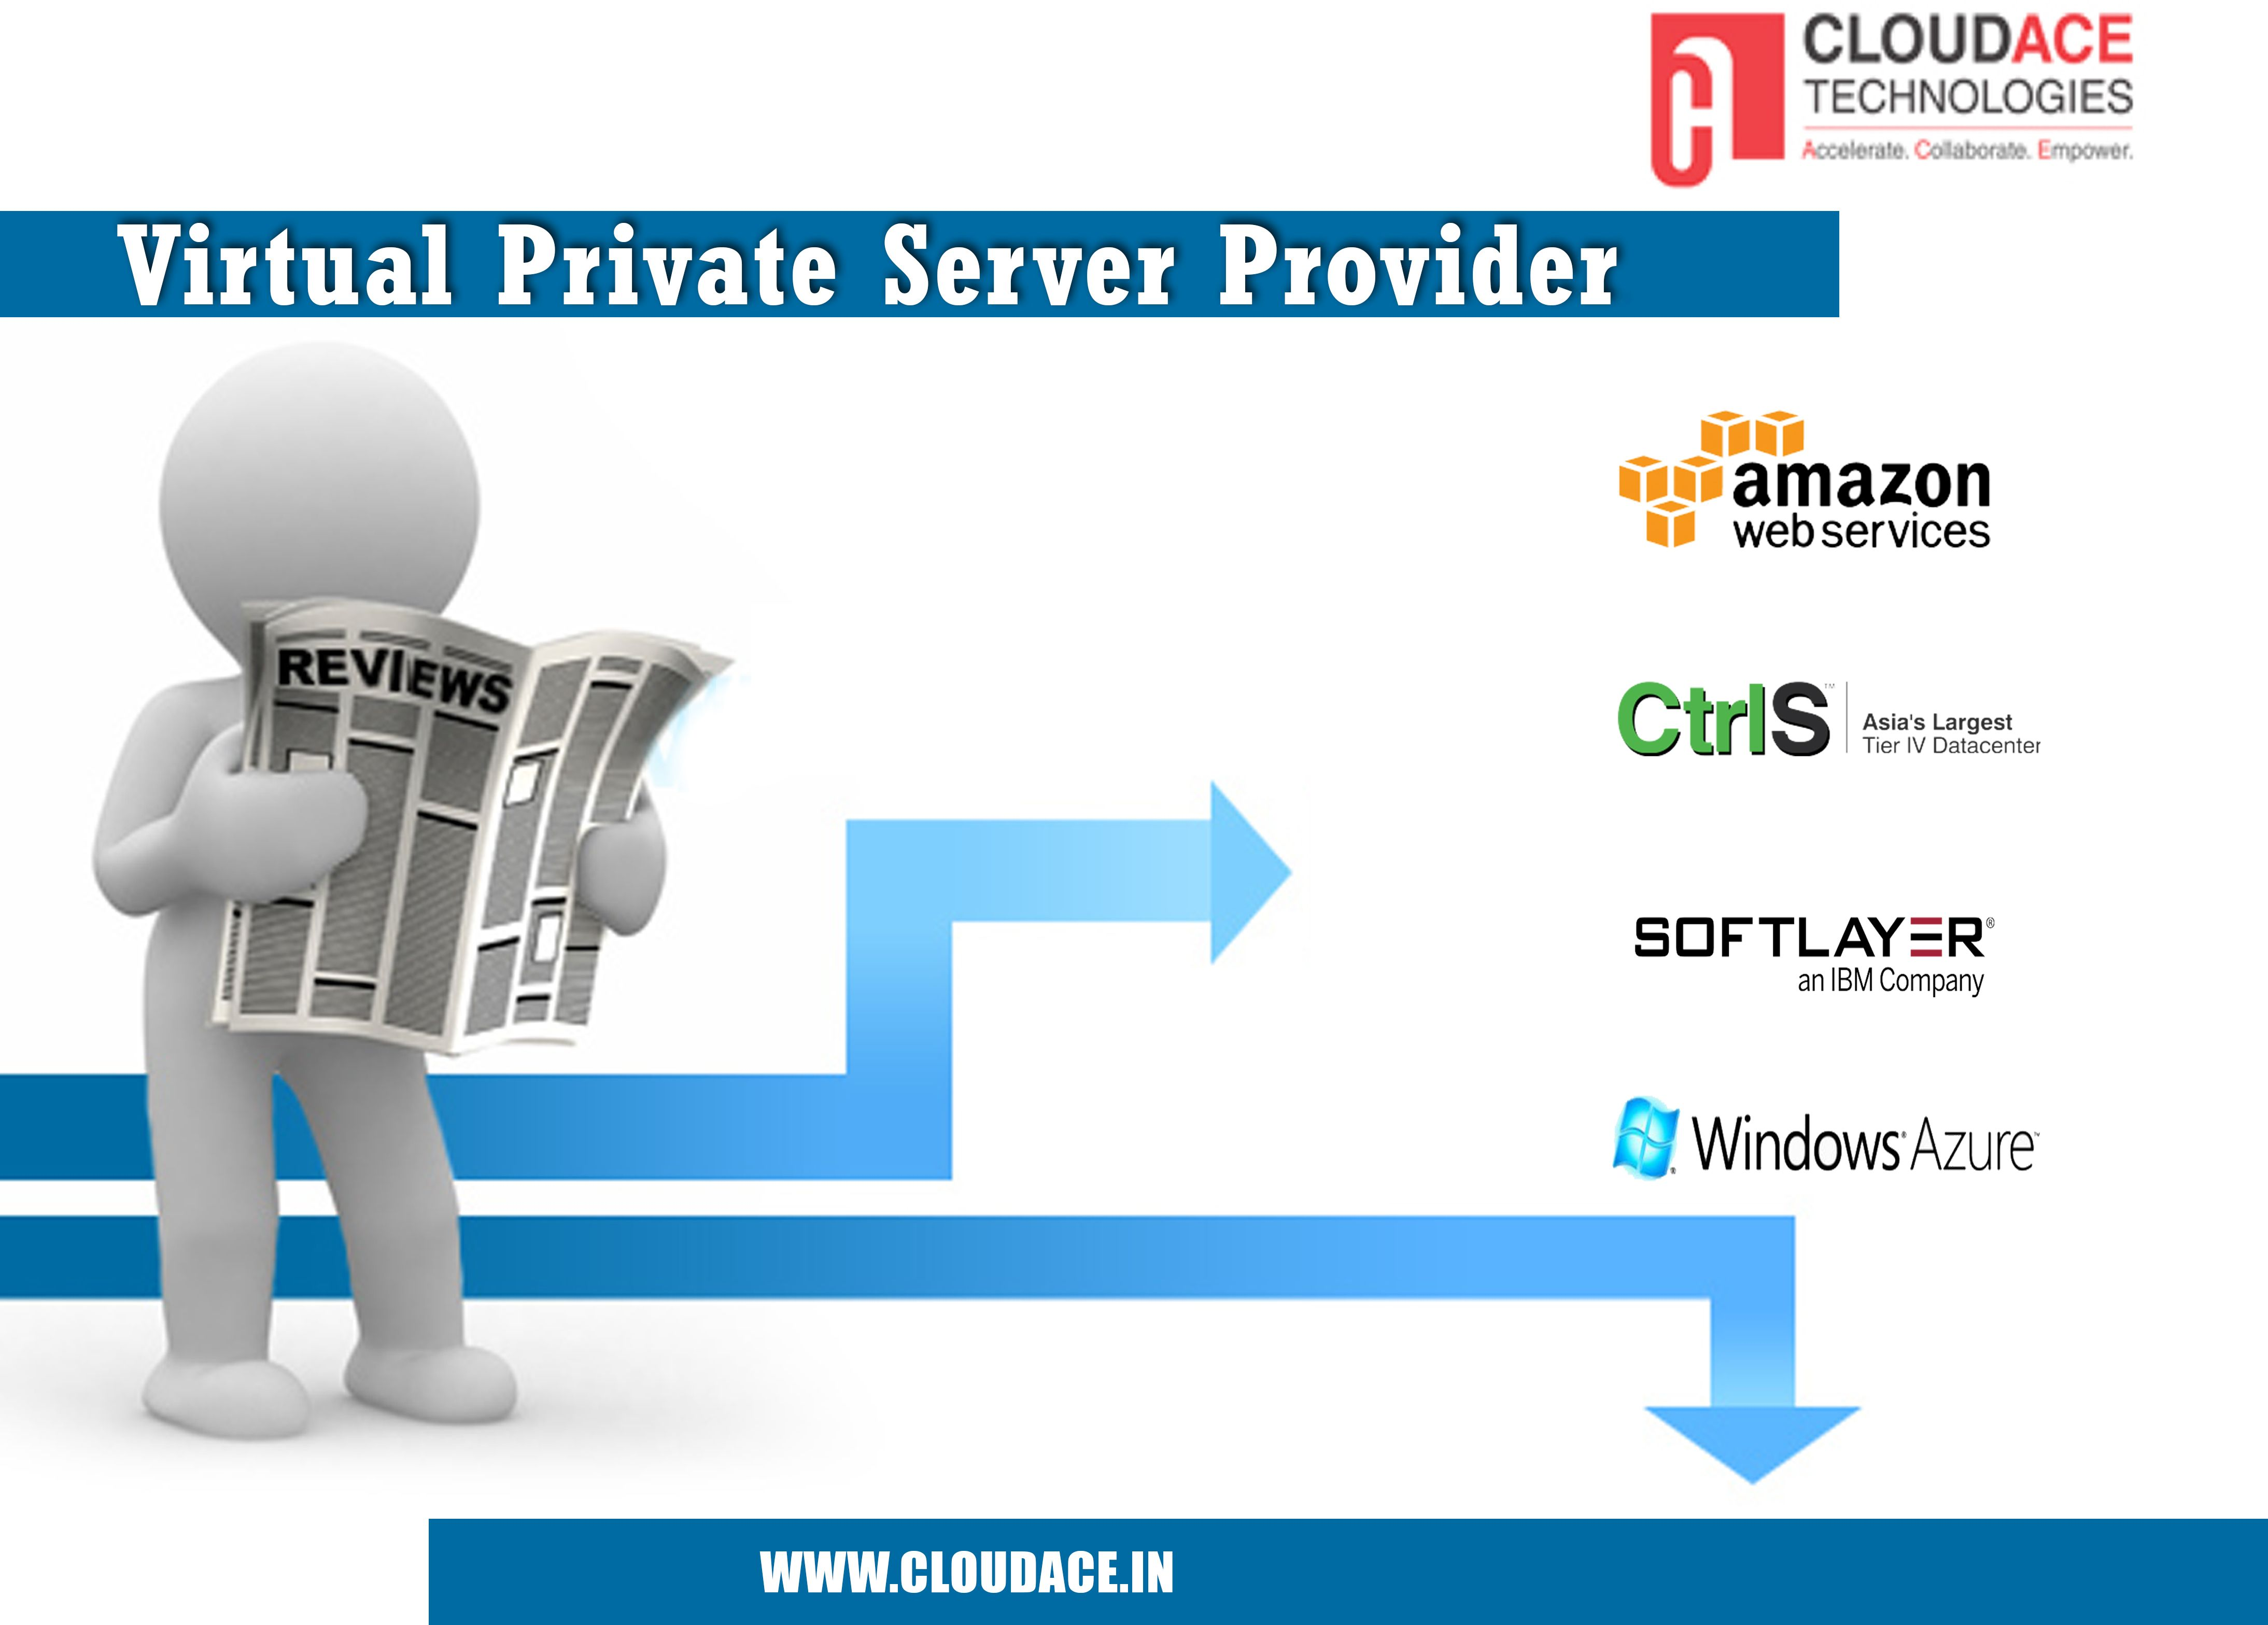 Reputed dealers of Softlayer and CTRLS #Virtual Private Servers,our pricings are the most affordable ones in the market. For details :https://goo.gl/WrnU1X